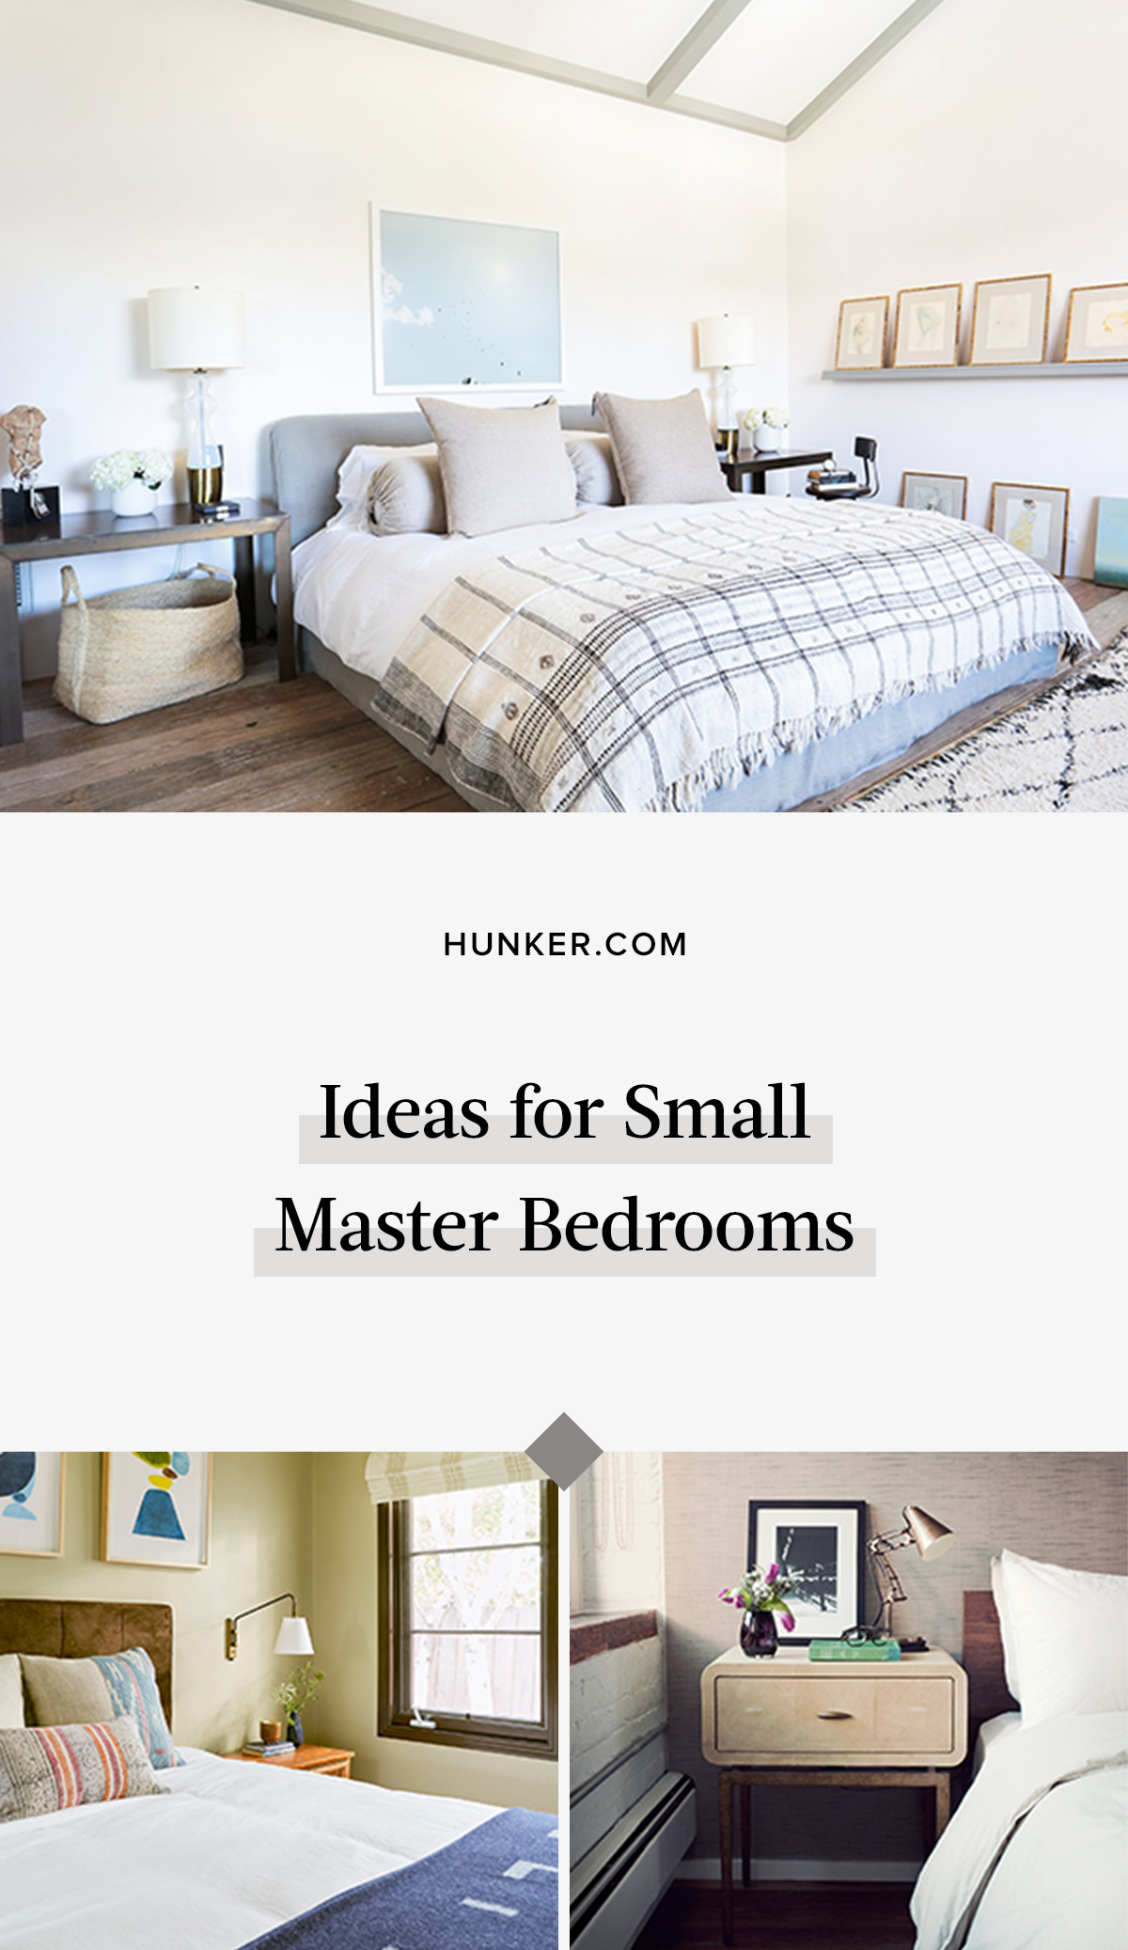 5 Small Master Bedroom Ideas to Make the Most of Minimal ...